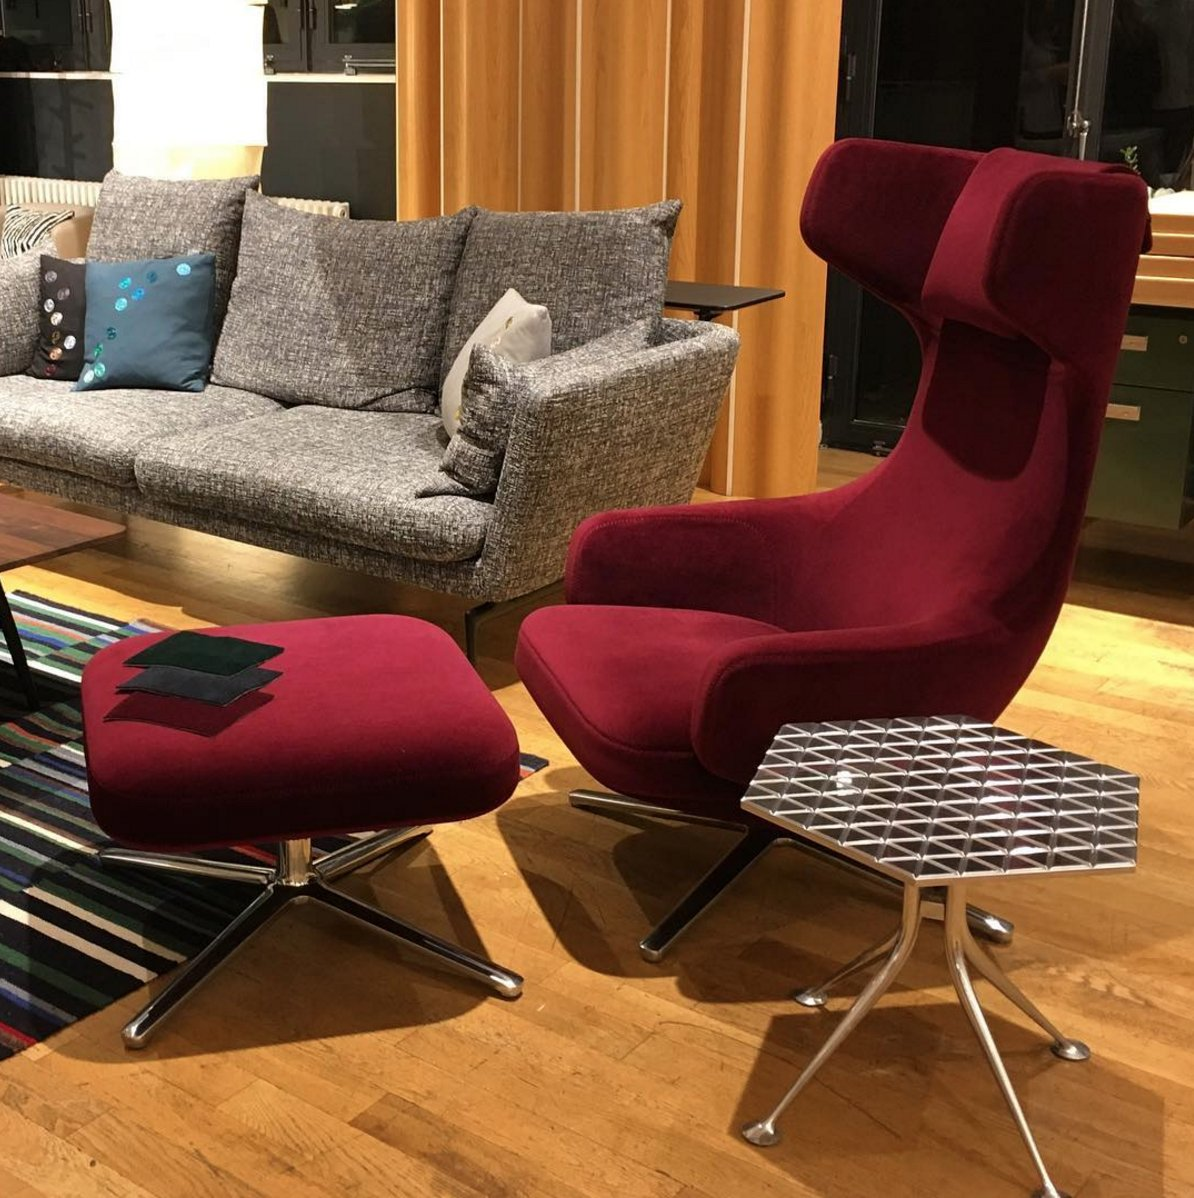 couch potato company on twitter check out the vitra winter stories including two limited. Black Bedroom Furniture Sets. Home Design Ideas